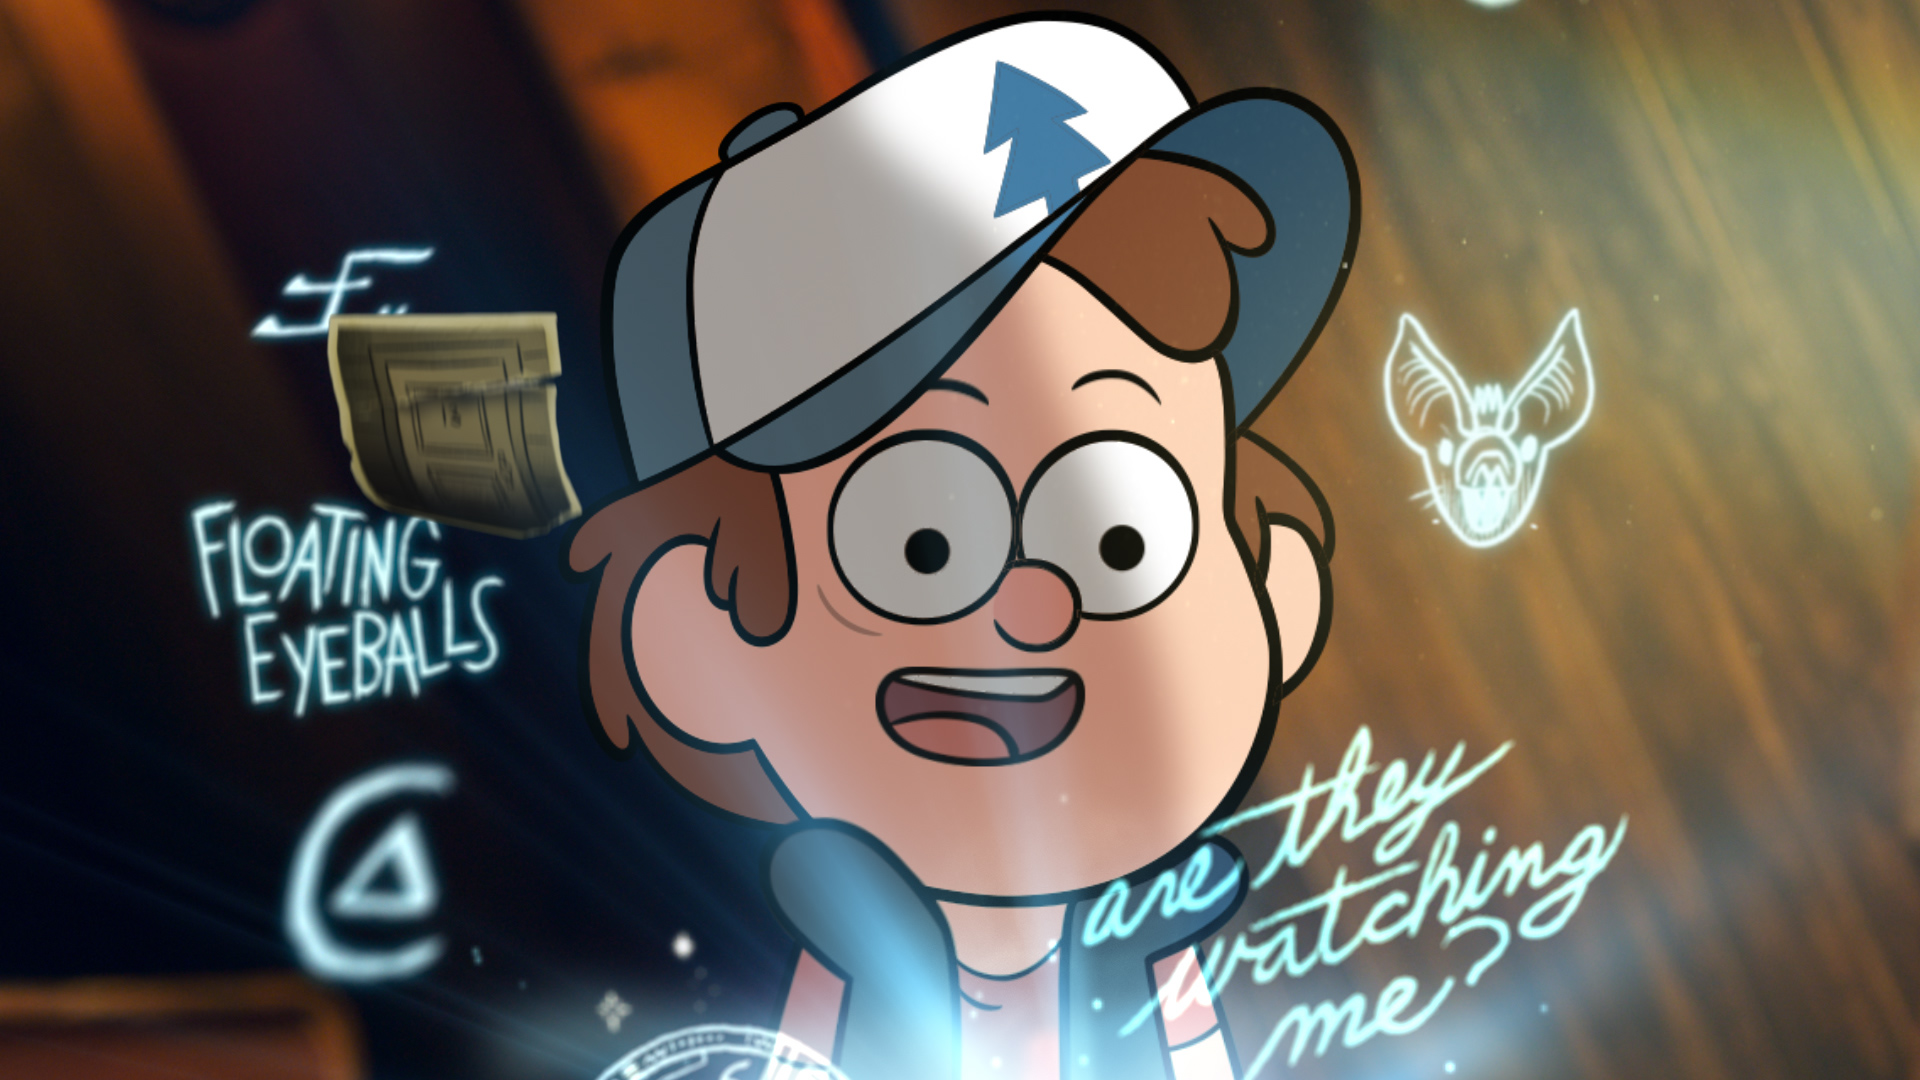 Gravity Falls Be Inspired PSA